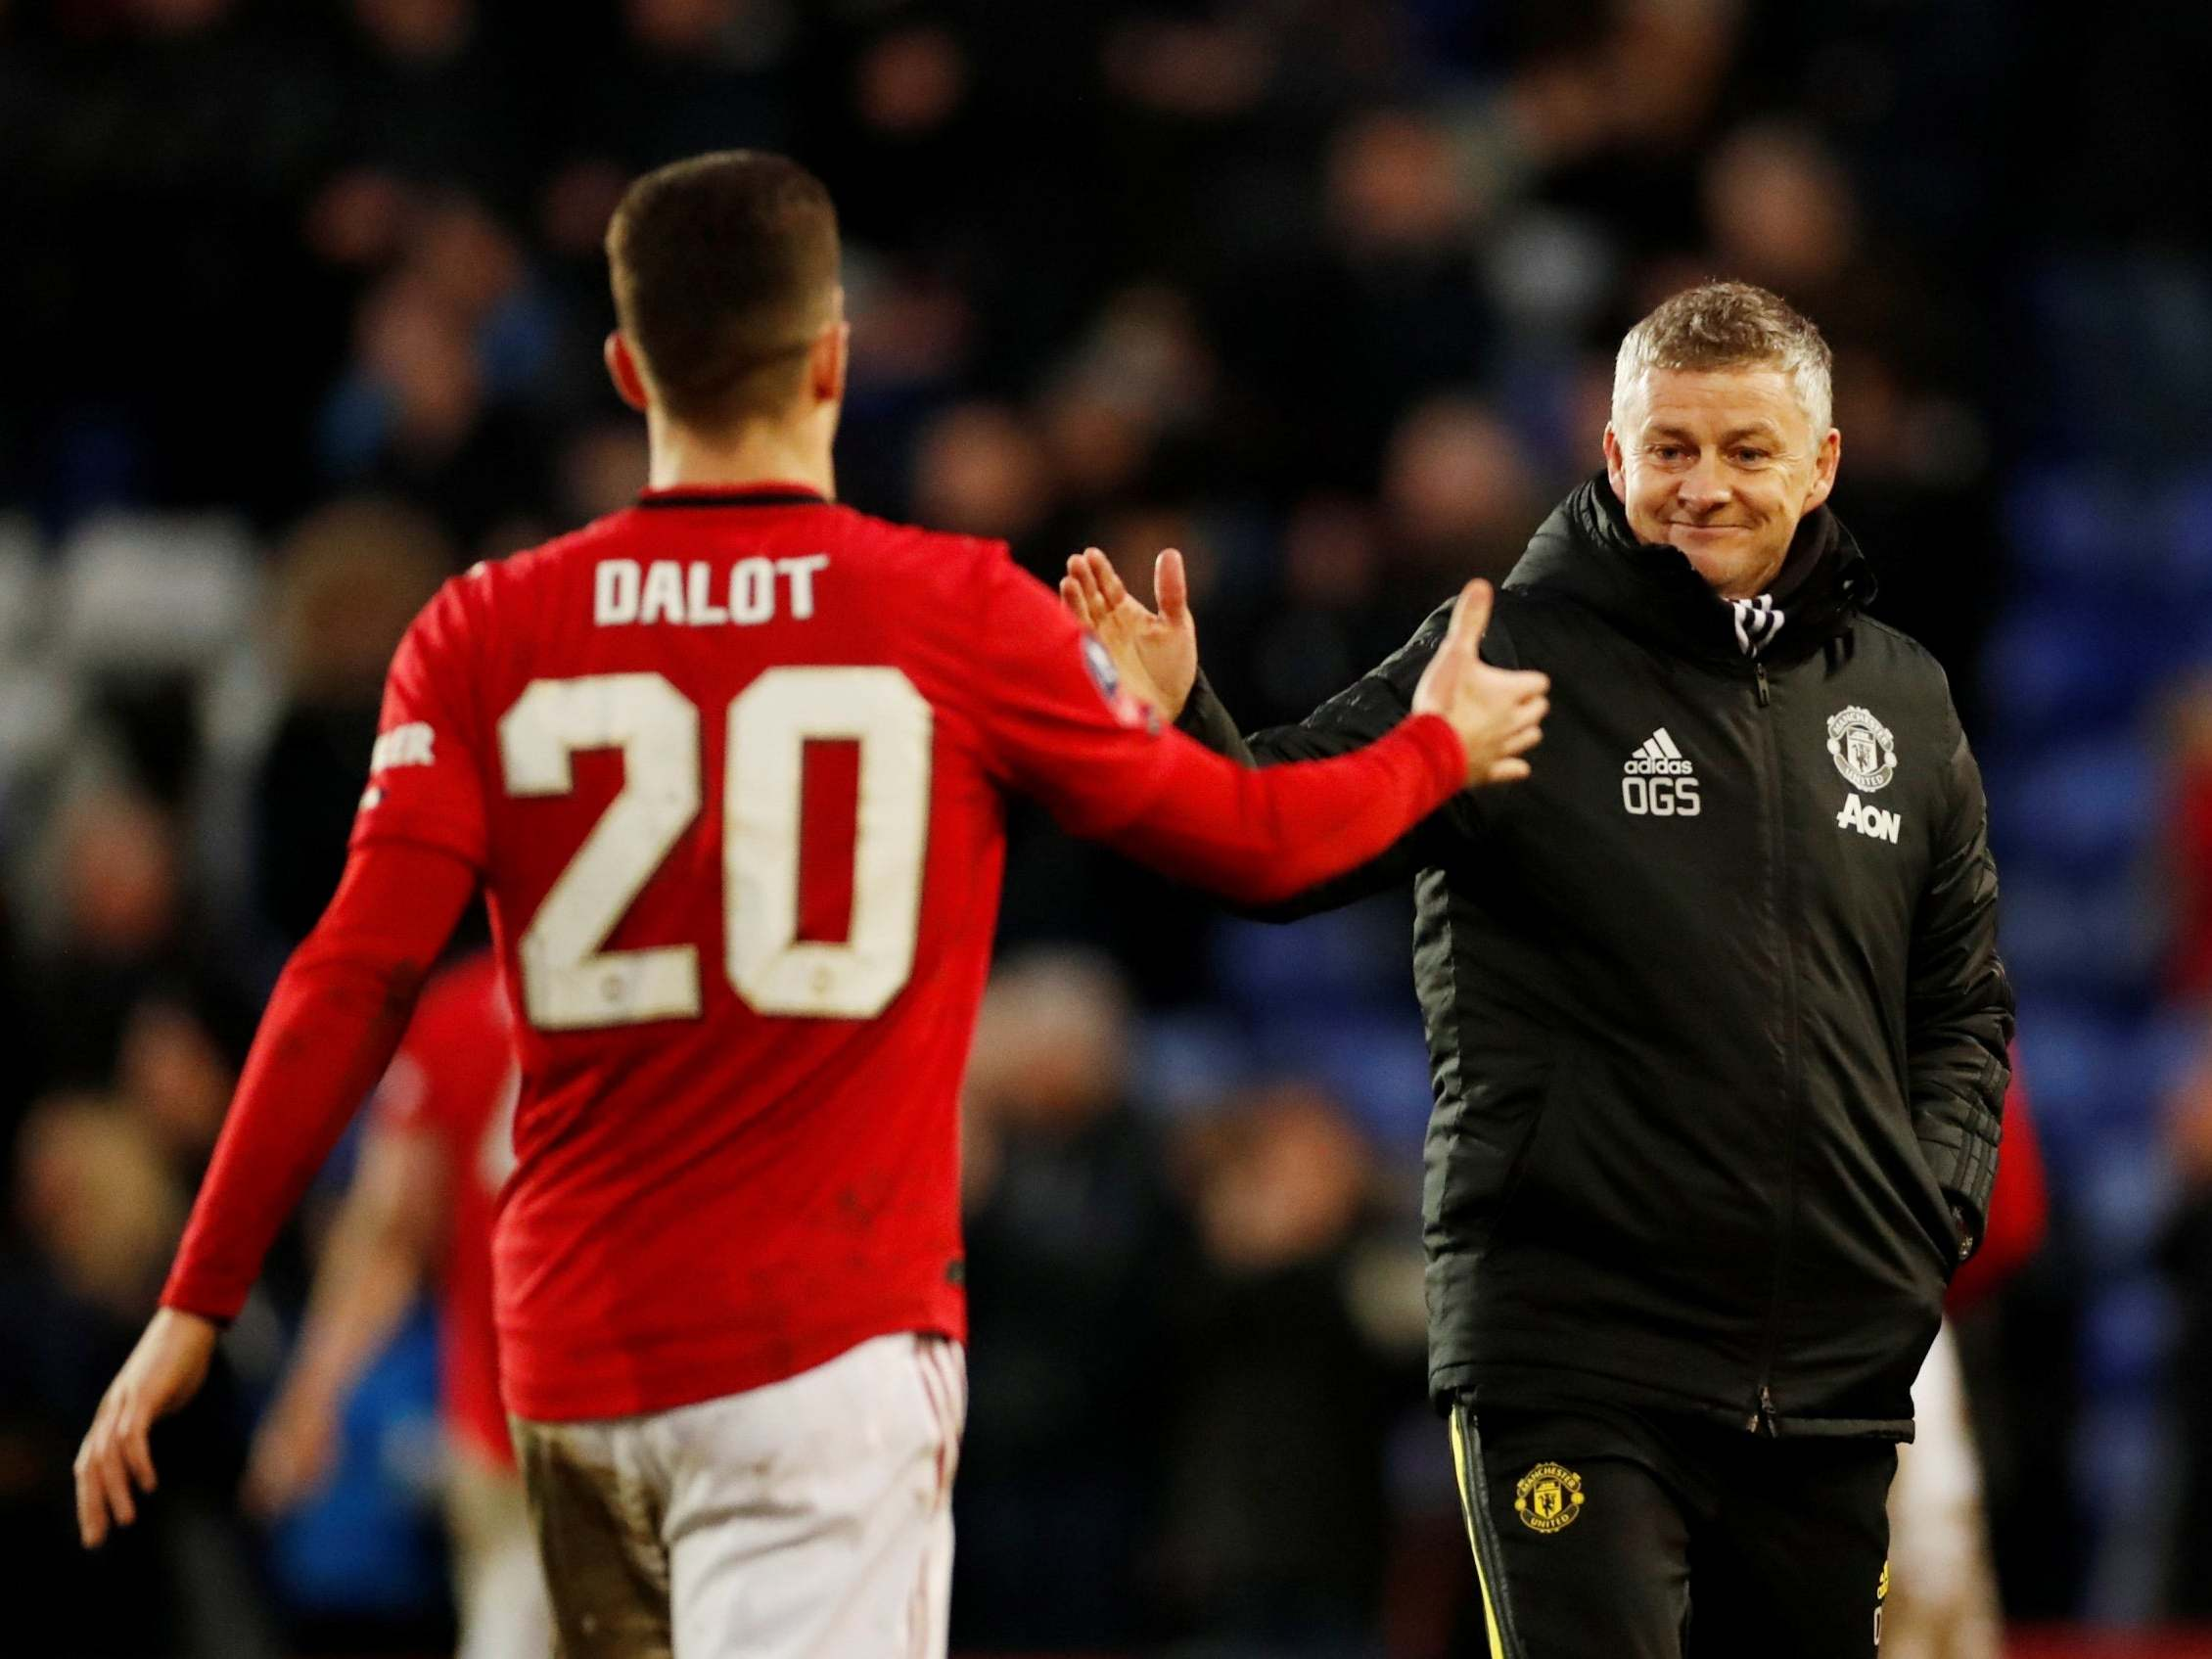 Ole Gunnar Solskjaer and Manchester United come out fighting at end of a difficult week